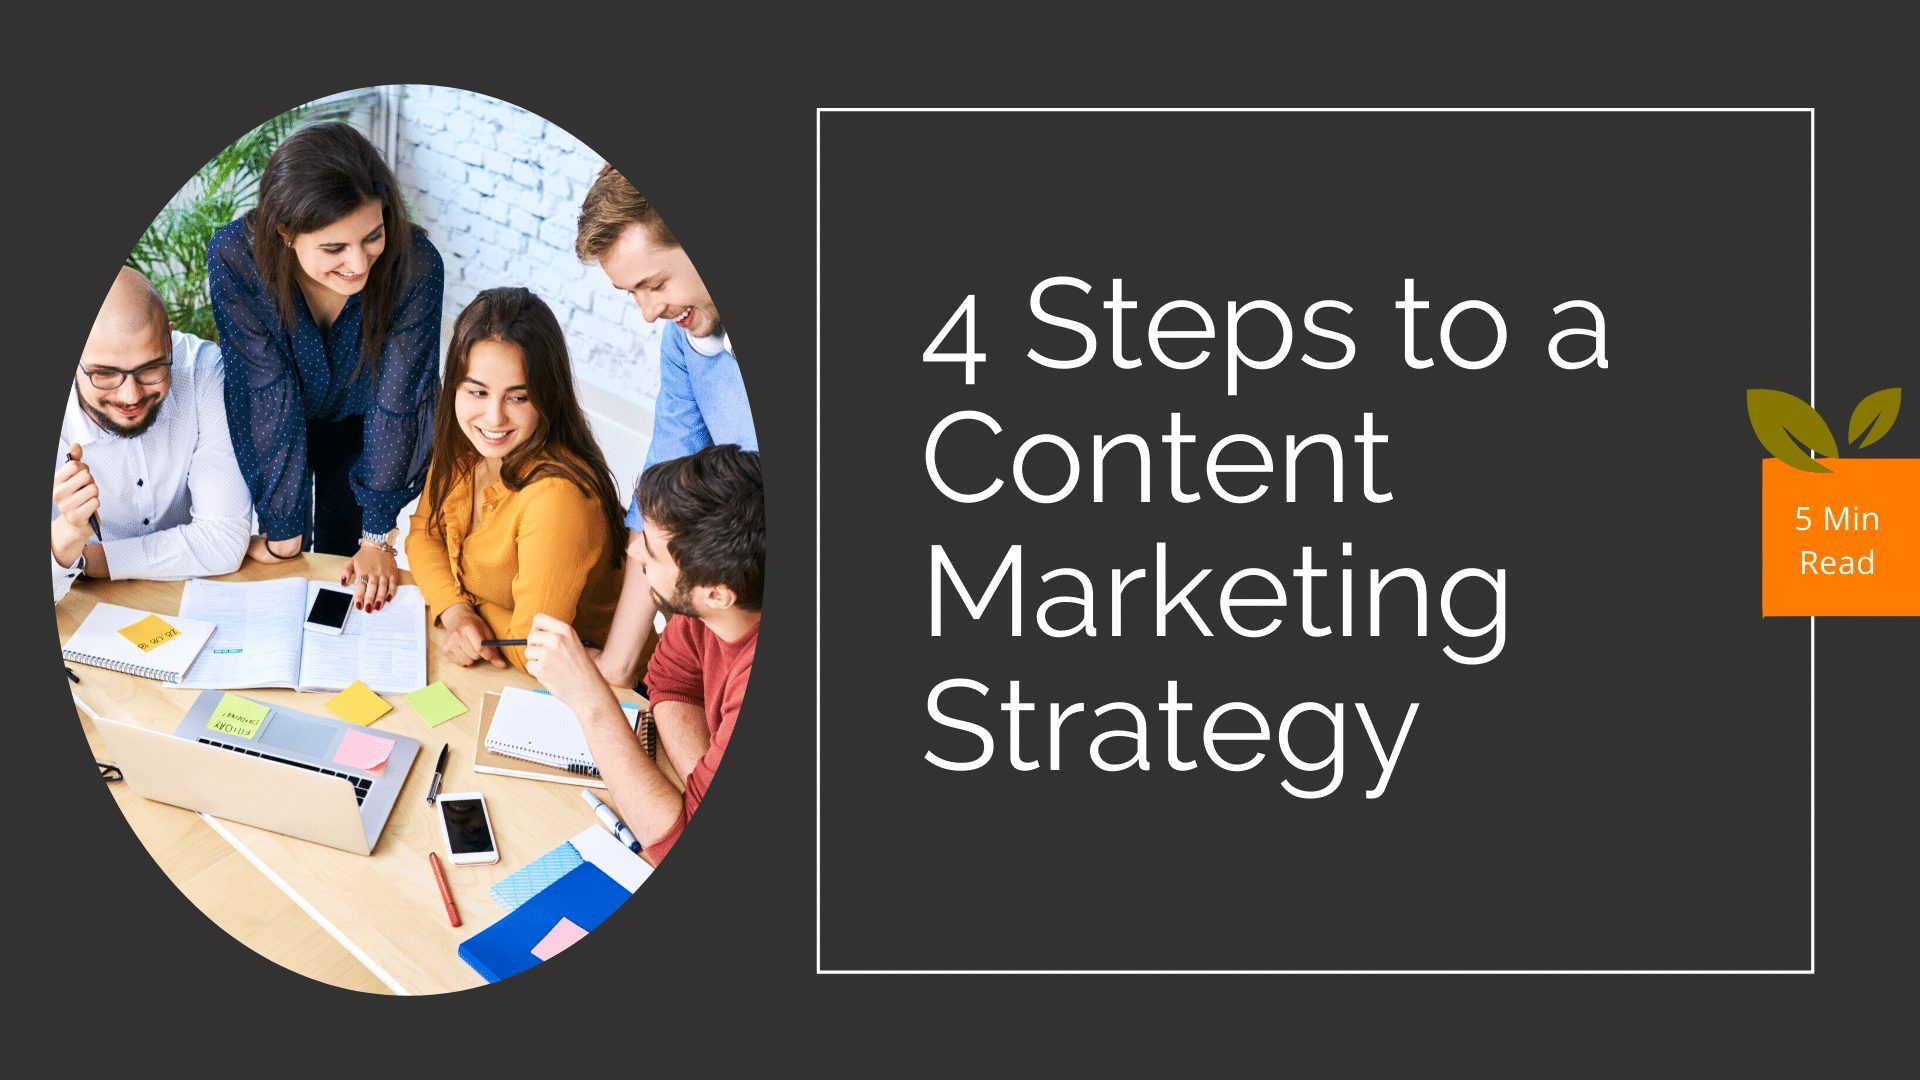 4 Easy Steps to a Content Marketing Strategy